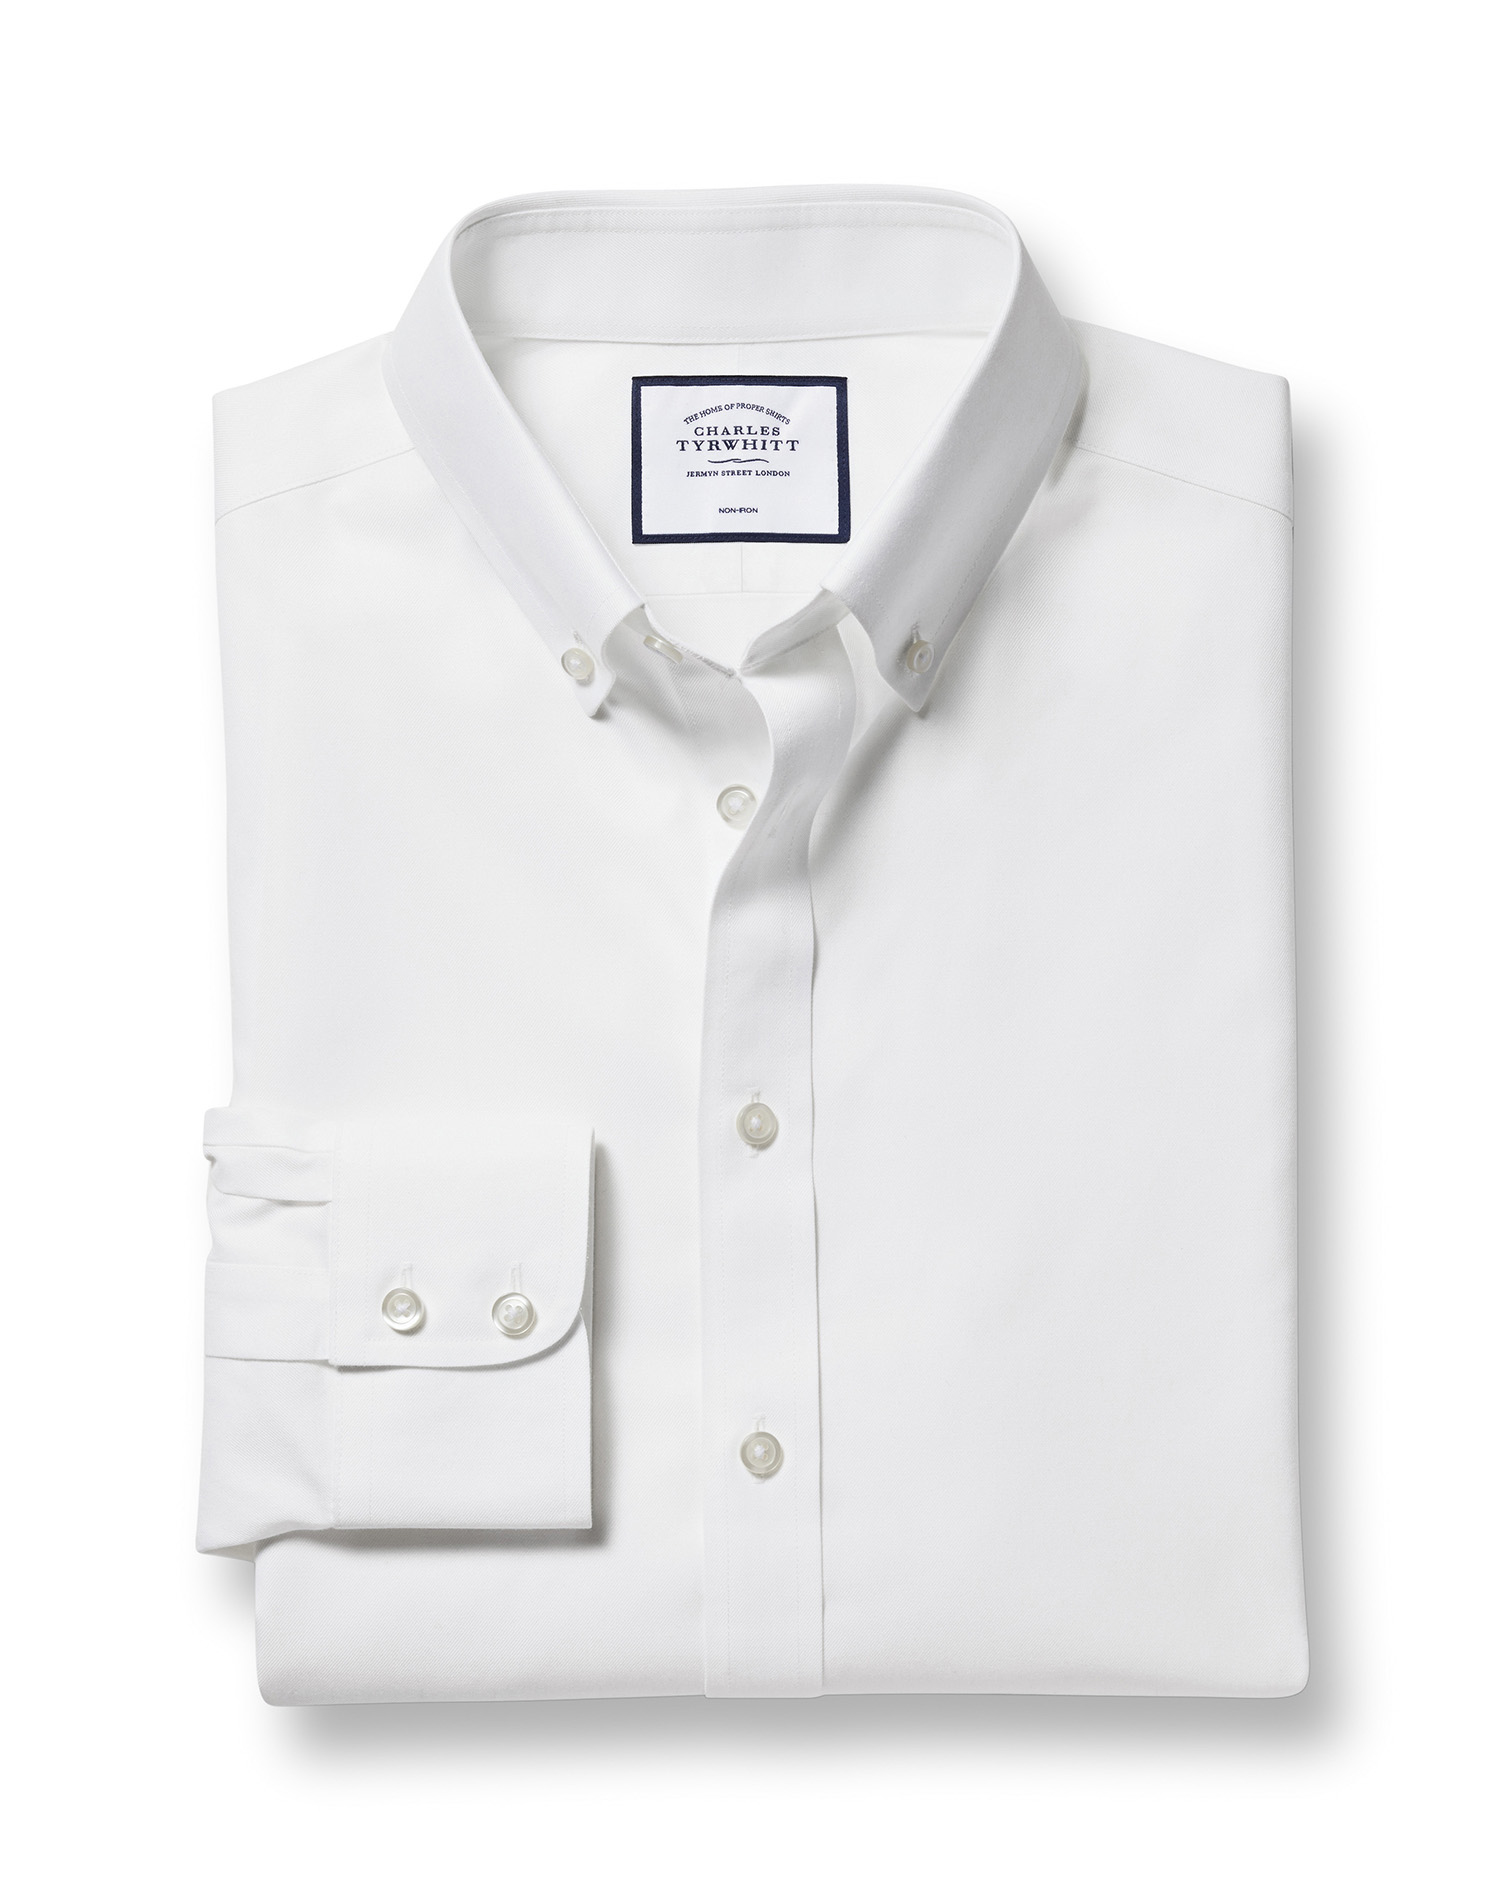 Classic Fit Button-Down Non-Iron Twill White Cotton Formal Shirt Single Cuff Size 17/36 by Charles T